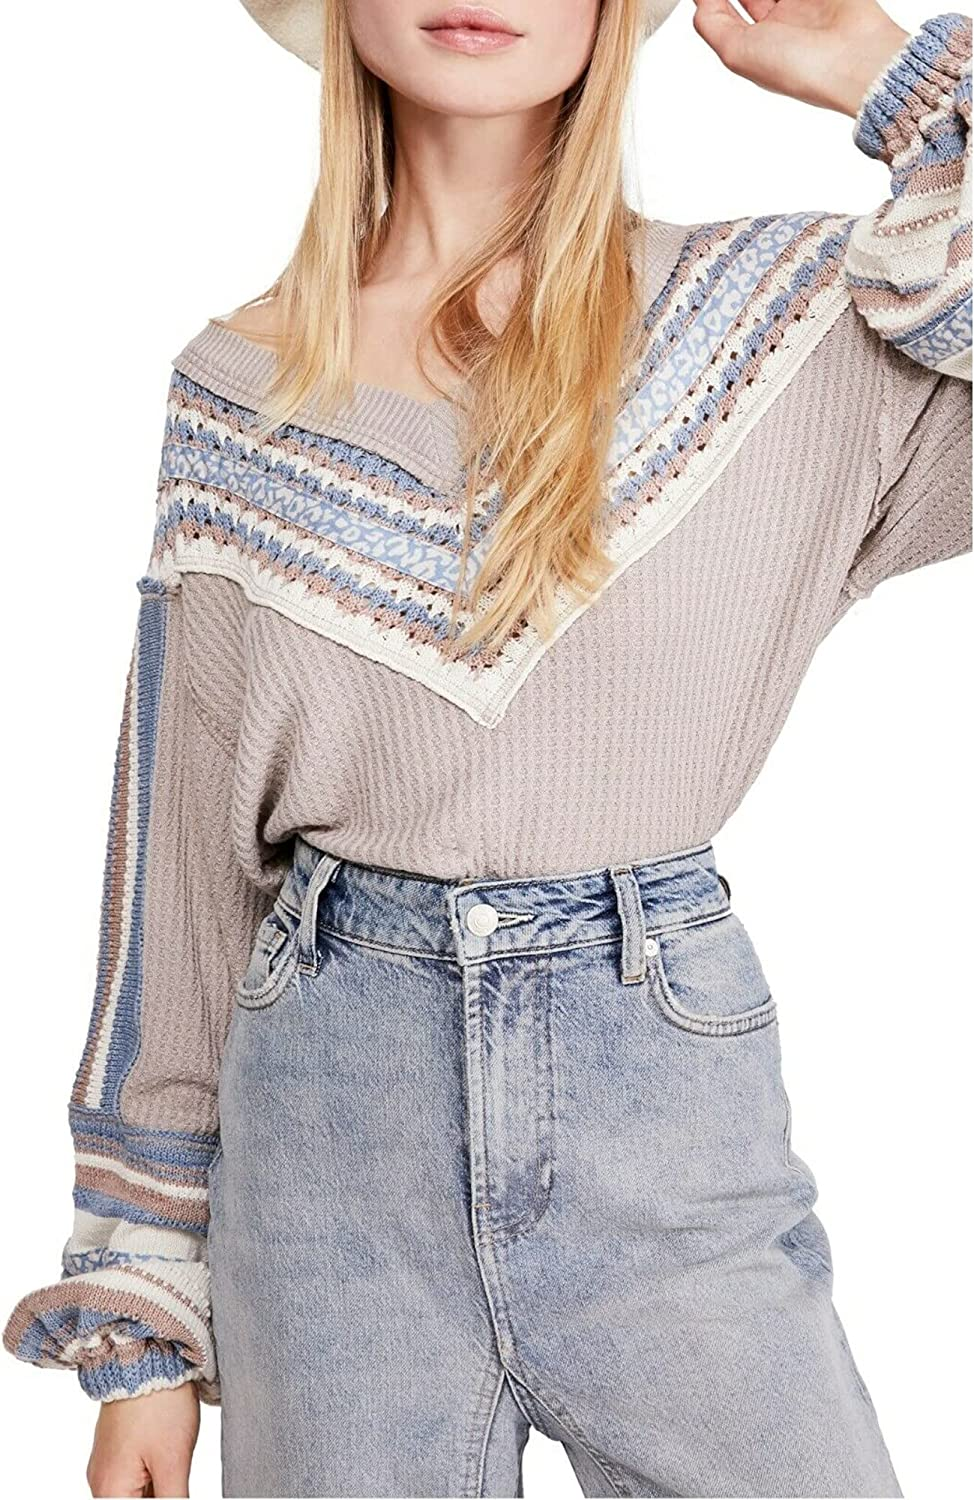 Free People Womens Open Stitch Printed Thermal Top